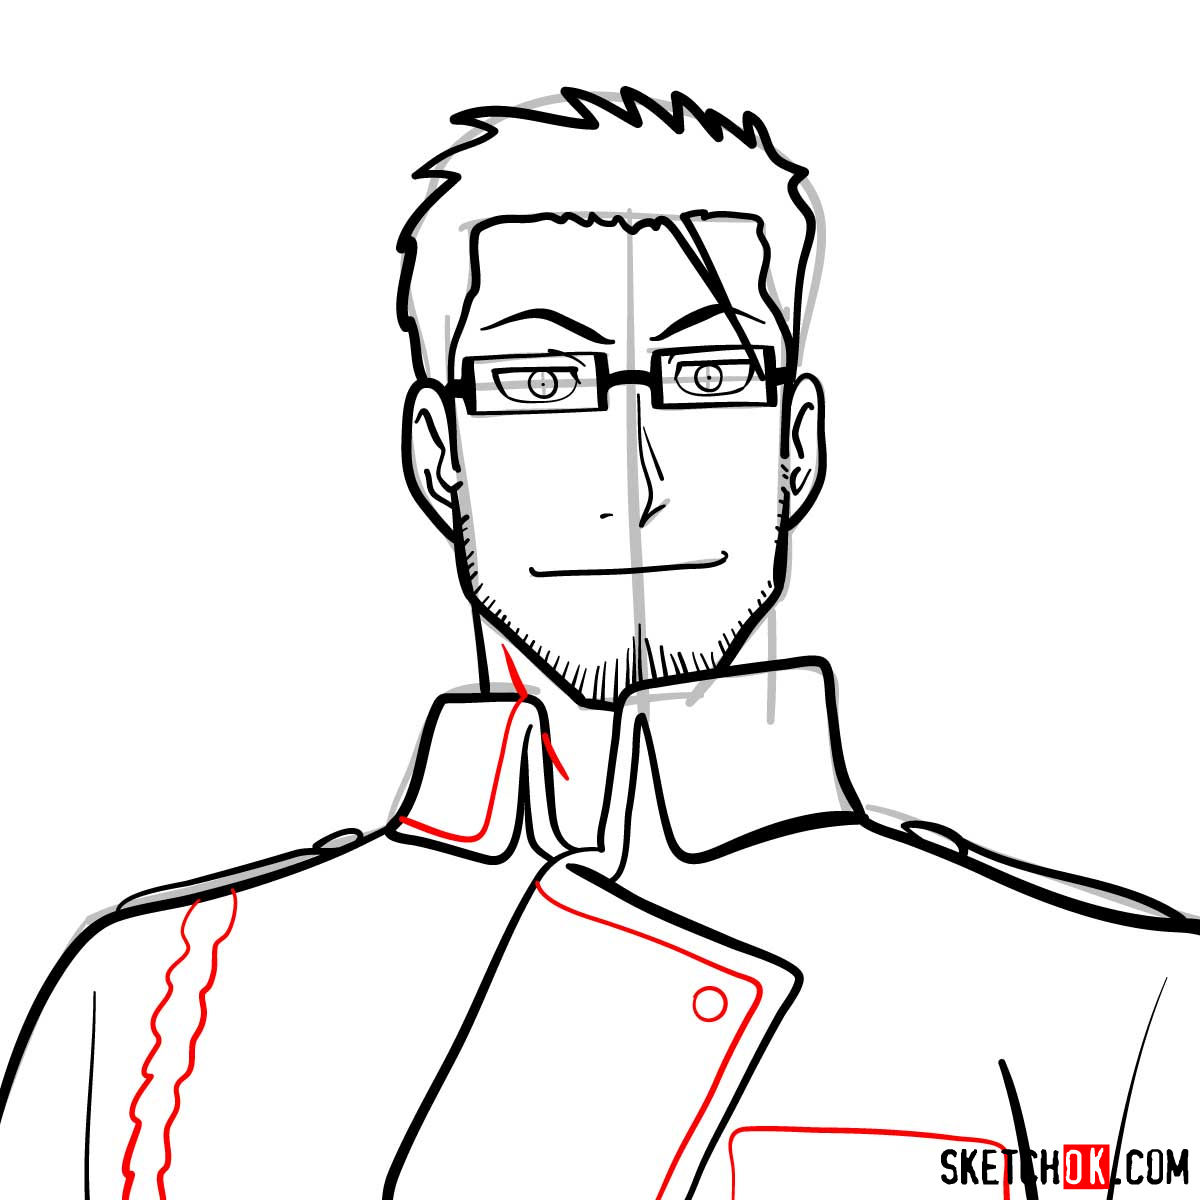 How to draw Maes Hughes from Fullmetal Alchemist anime - step 10